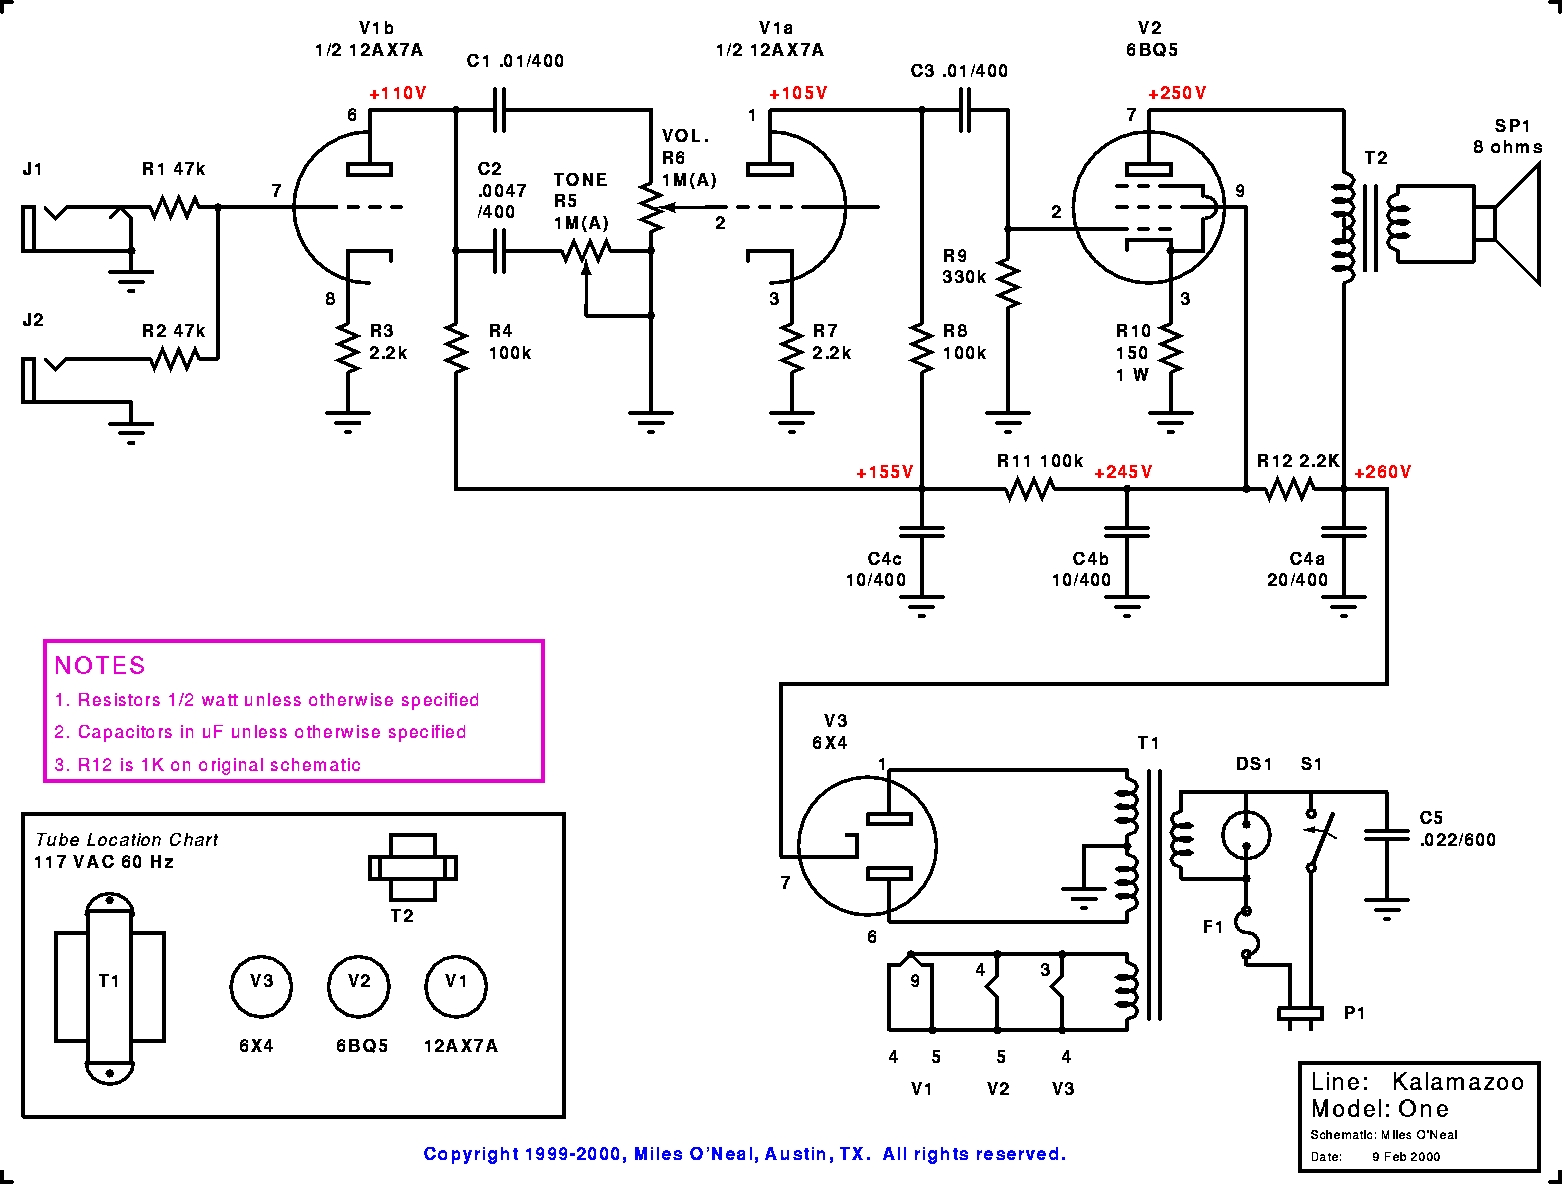 Kalamazoo Amp Field Guide Model 1 Schematic